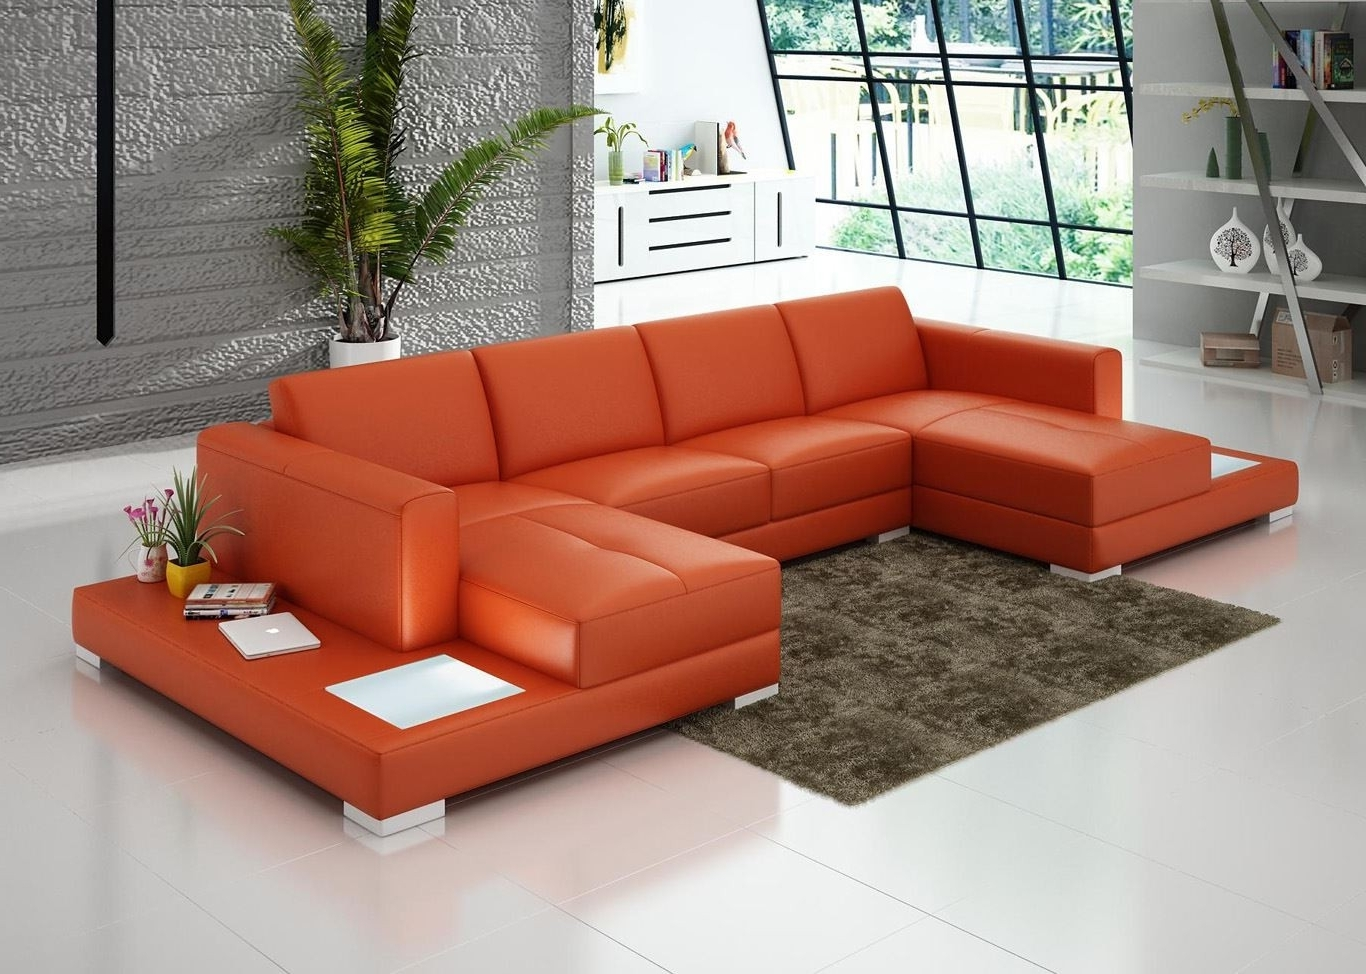 Popular Double Chaise Lounge Sofas Pertaining To U Shaped Orange Leather Sofa With Double Chaise Lounge And End (View 10 of 15)